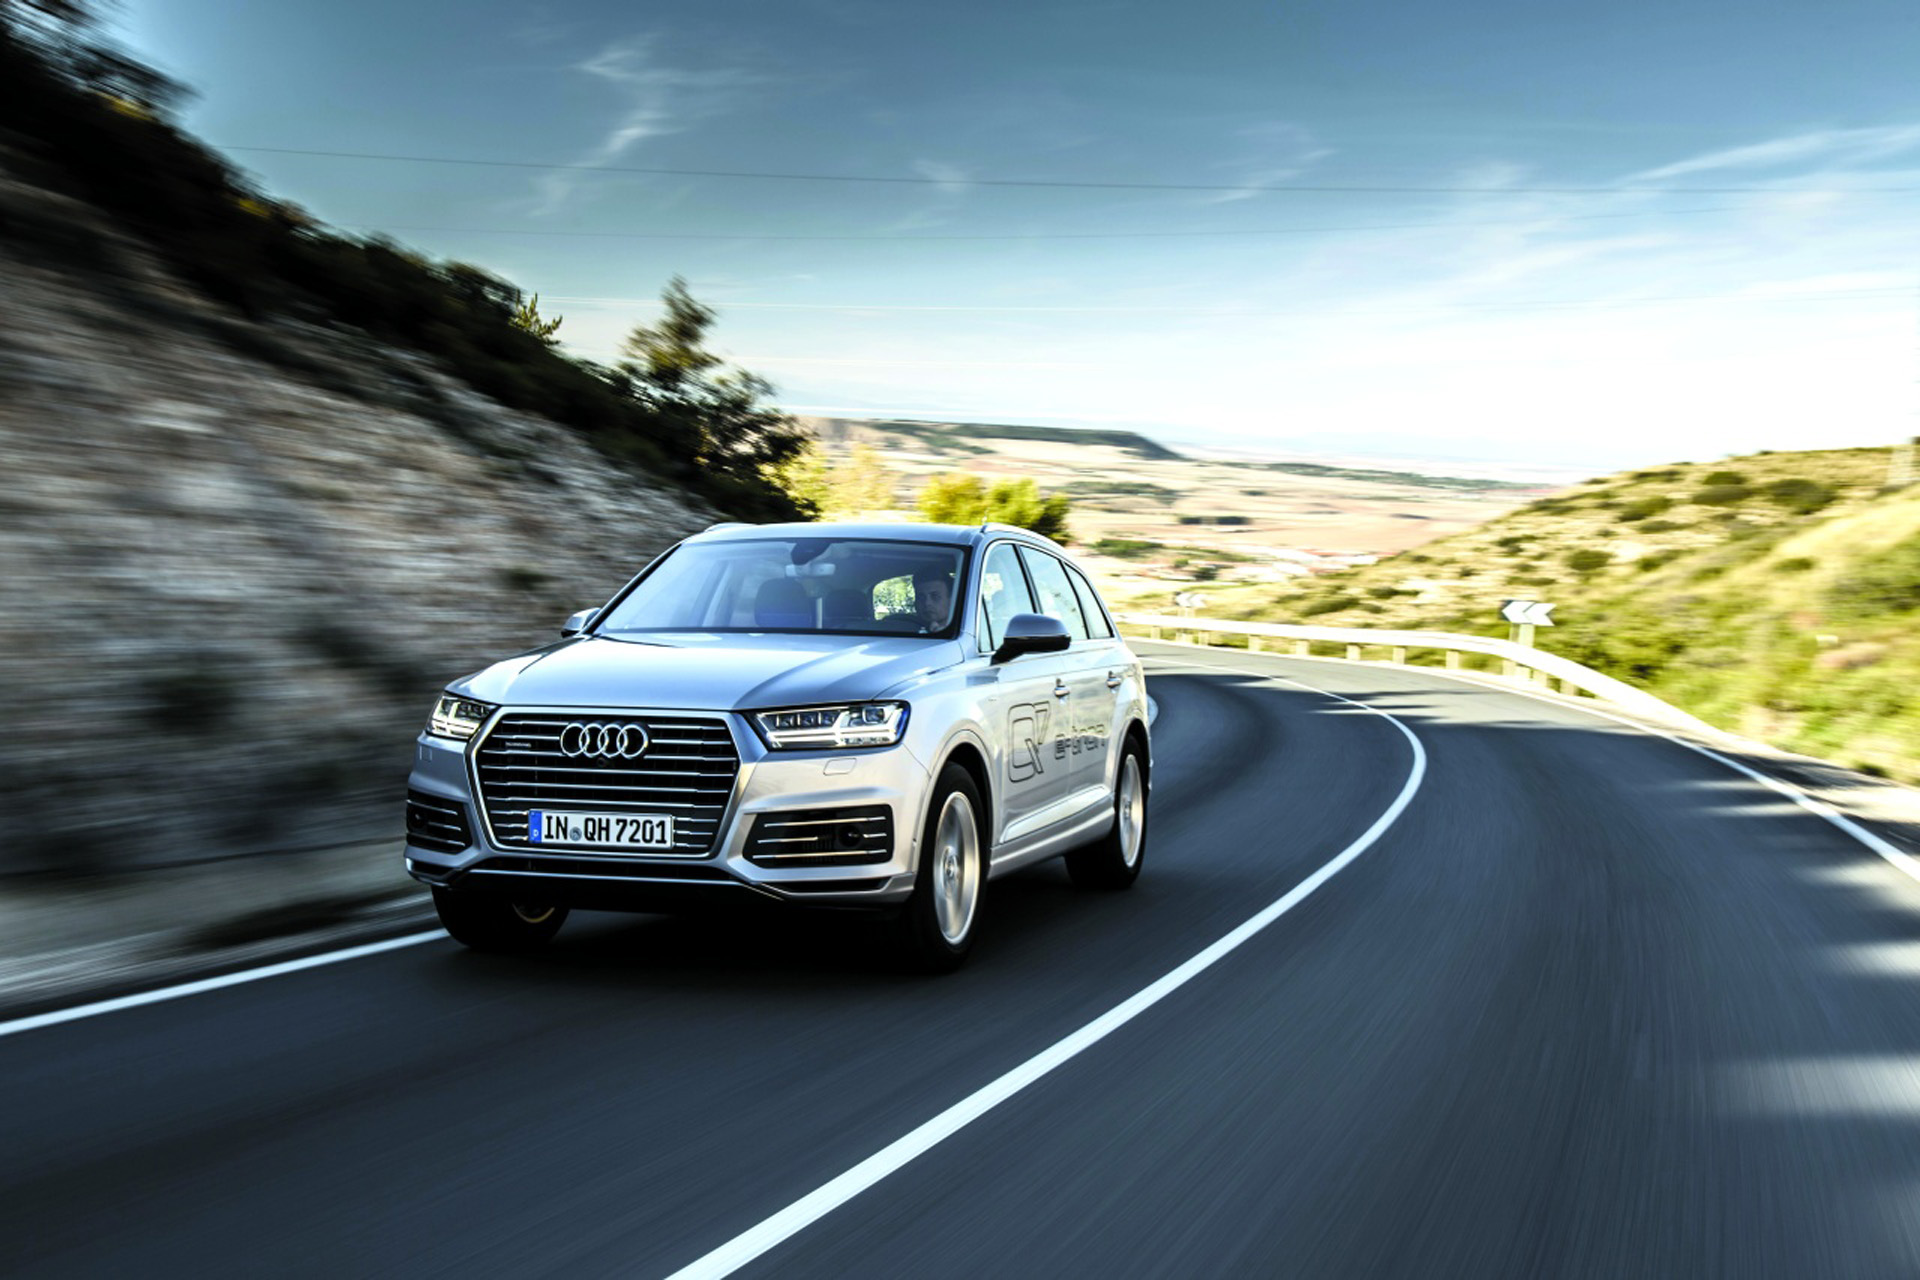 audi q7 e tron 3 0 tdi quattro la curent cu tehnologia headline test drive auto bild. Black Bedroom Furniture Sets. Home Design Ideas